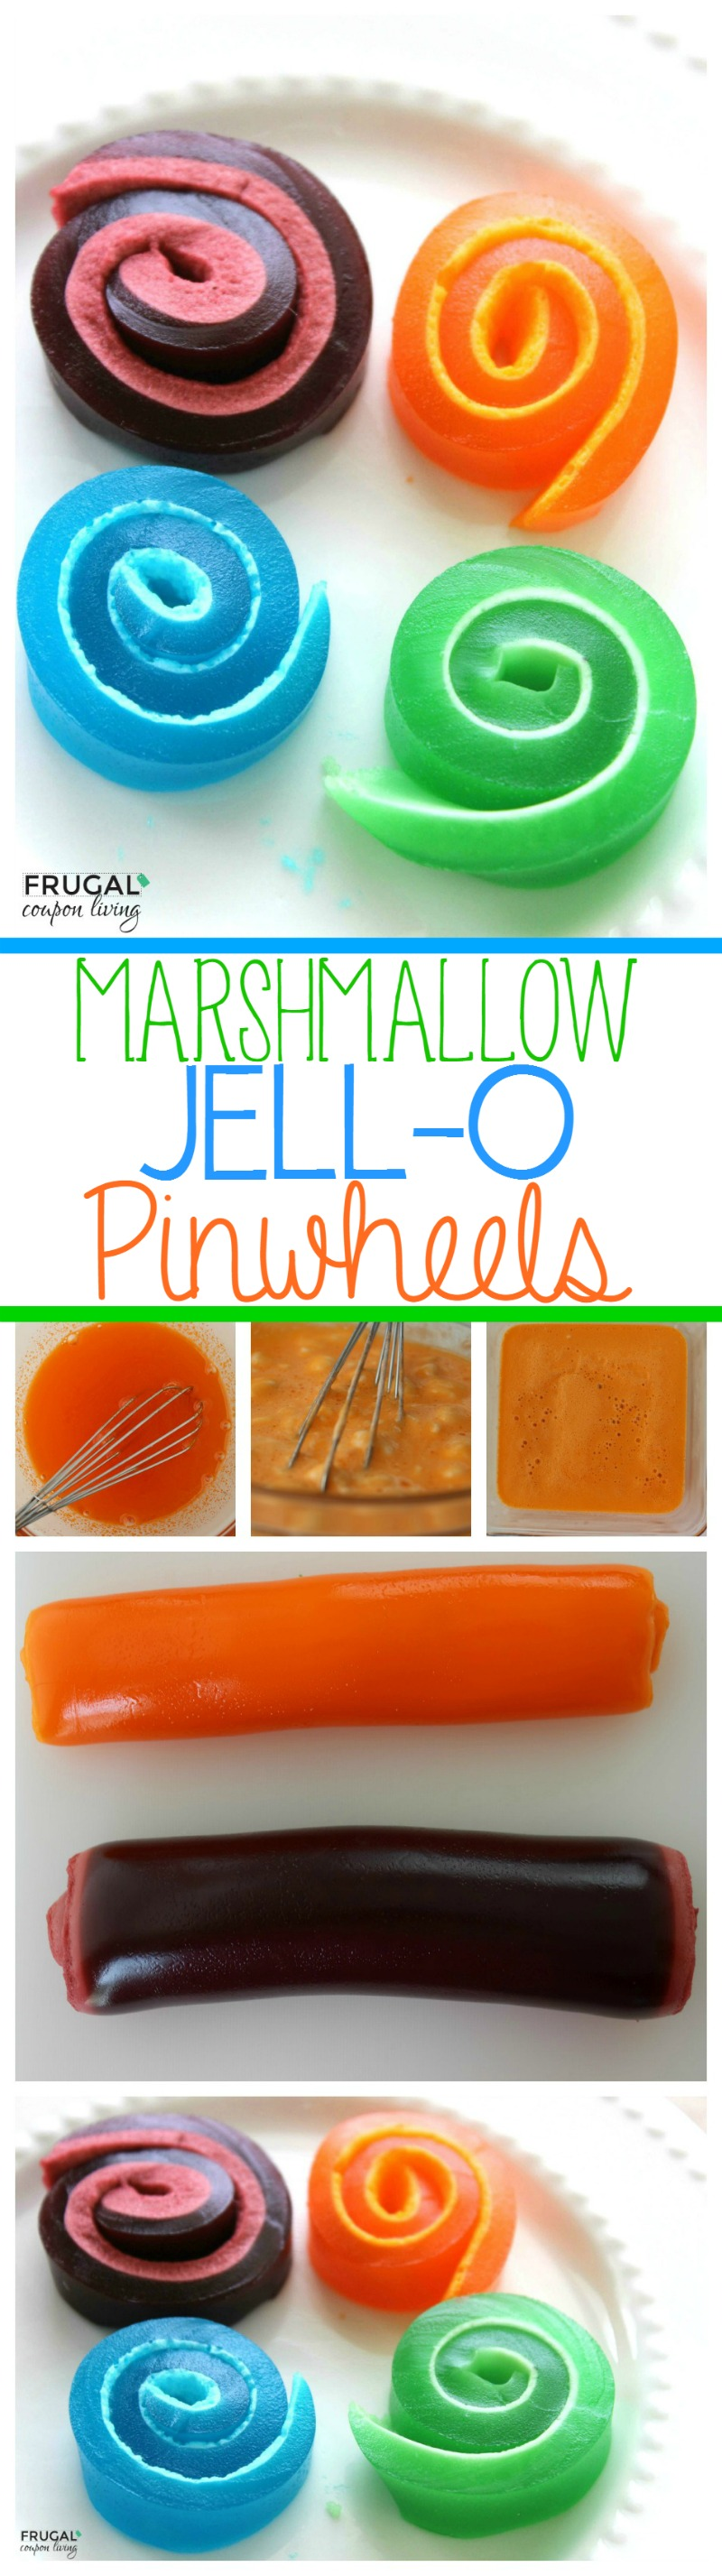 marshmallow-jello-Collage-frugal-coupon-living-finished